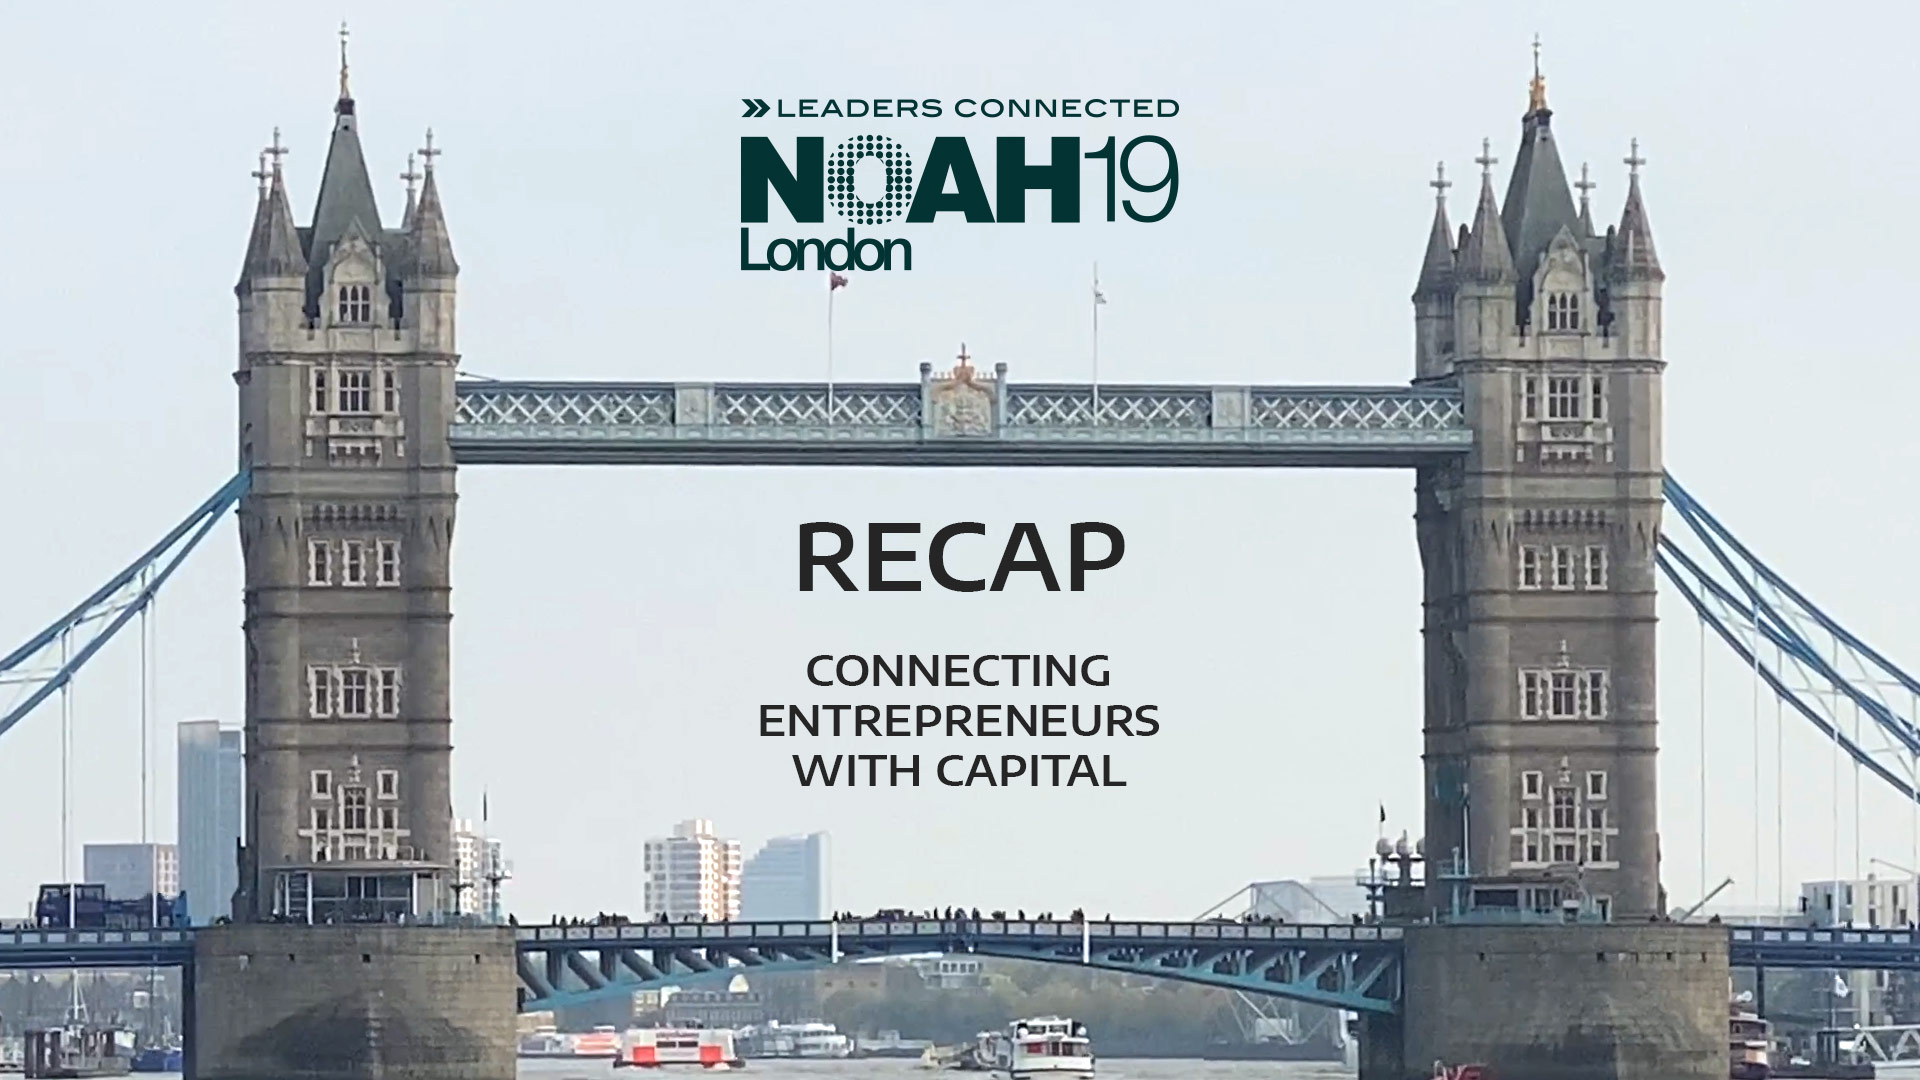 NOAH Conference 2019 Recap - Connecting Entrepreneurs with Capital